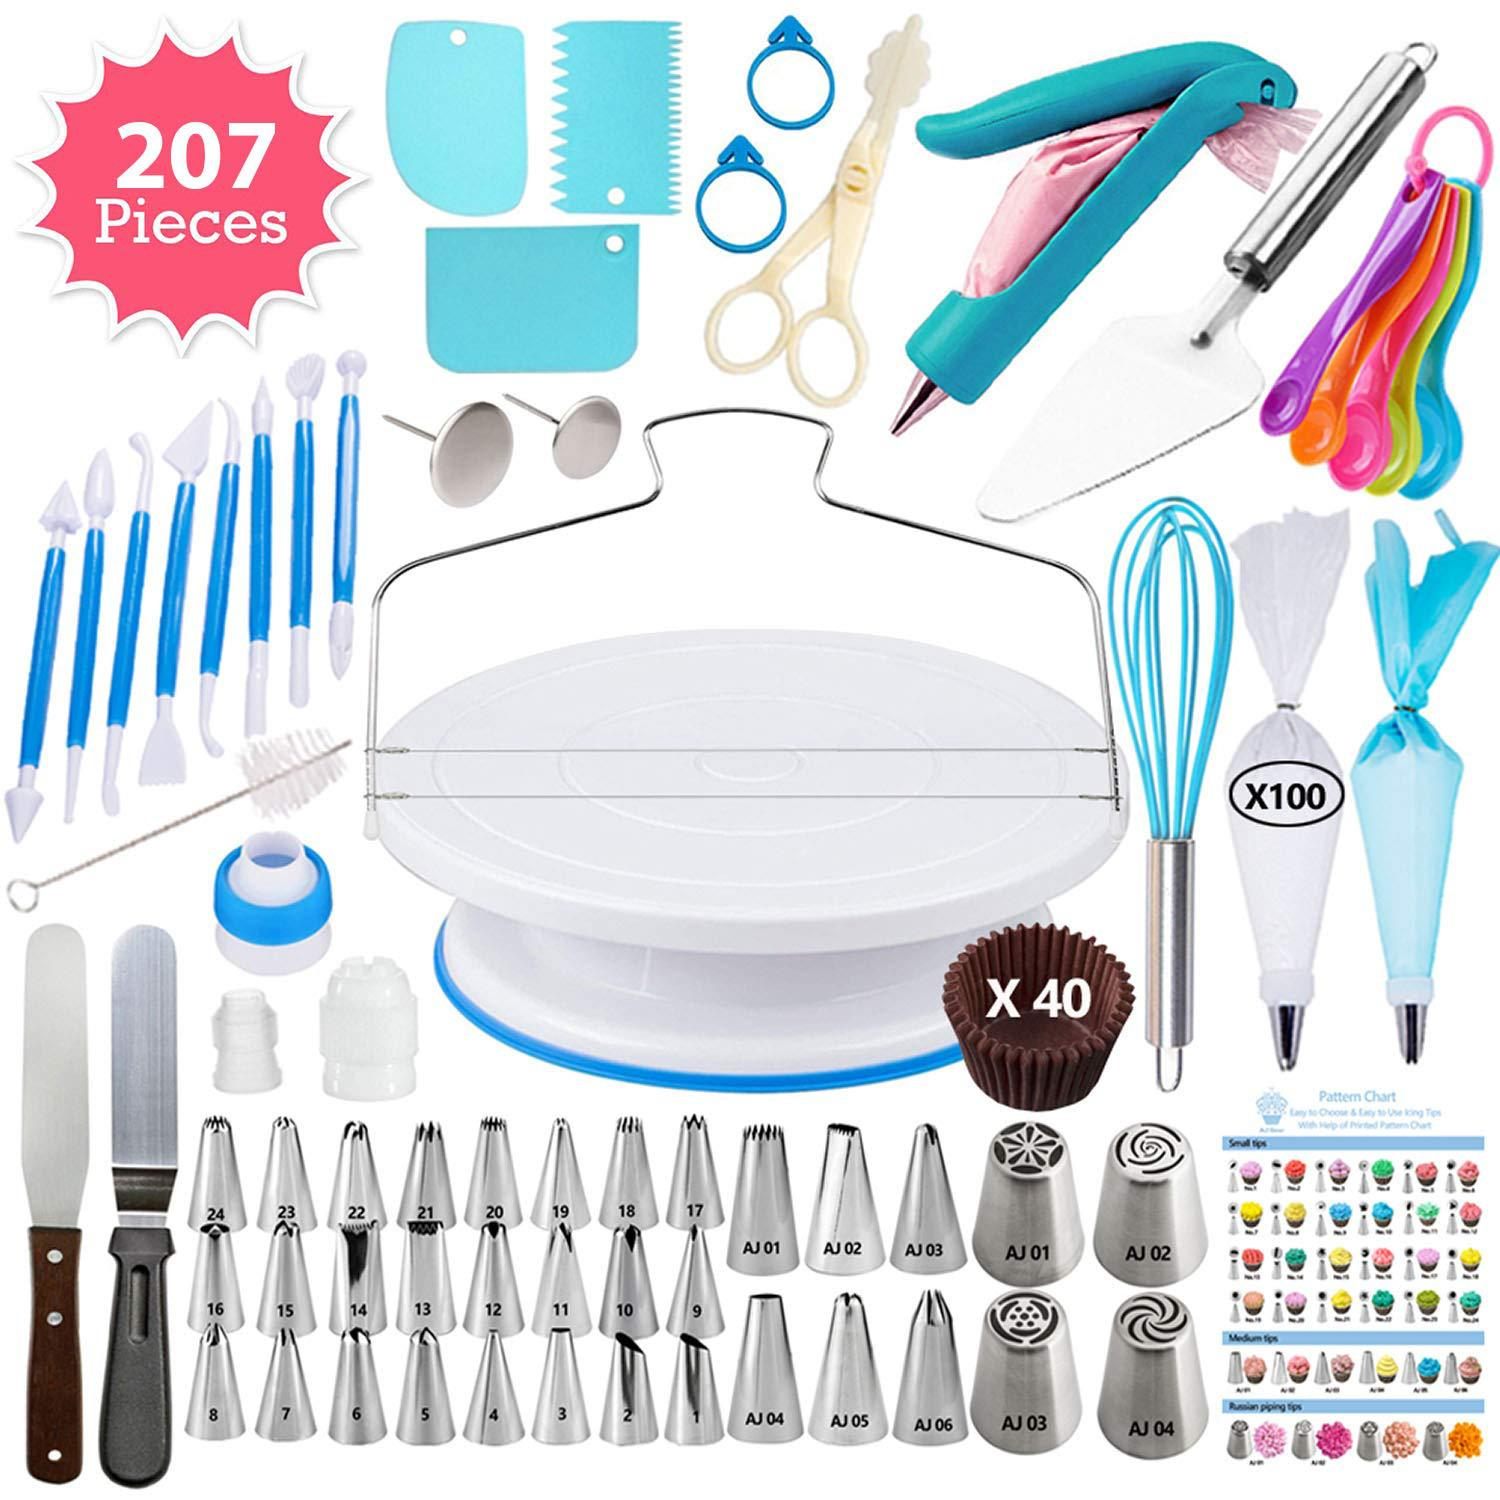 207 Piece Decorating Set - Cake Magician